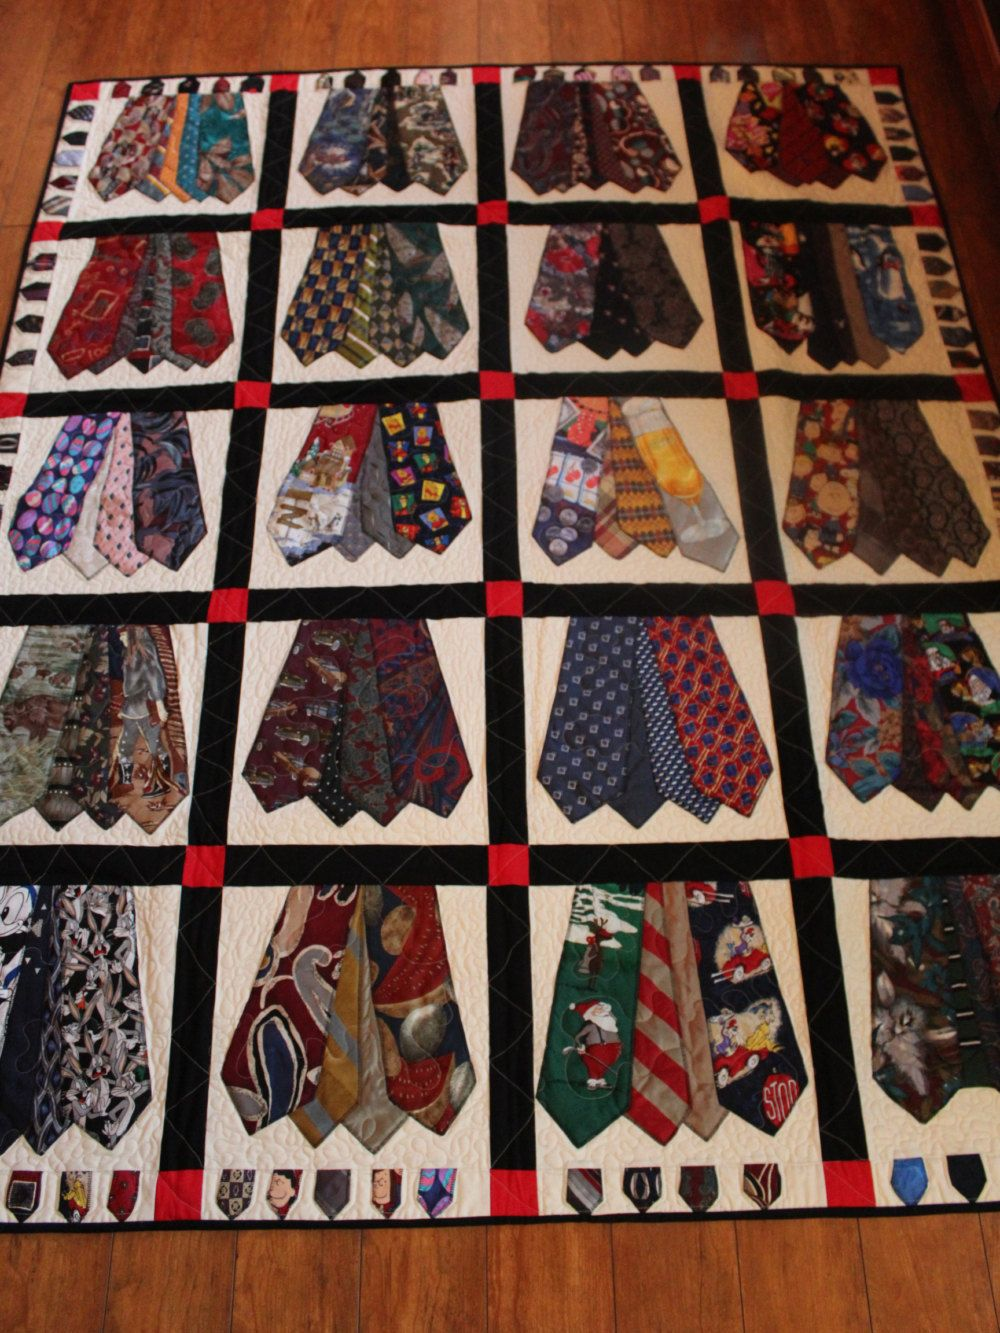 Necktie Quilting Patterns : Memory quilt of men s ties, Full size quilt of mmen s ties, Queen size quilt, King size quilt ...